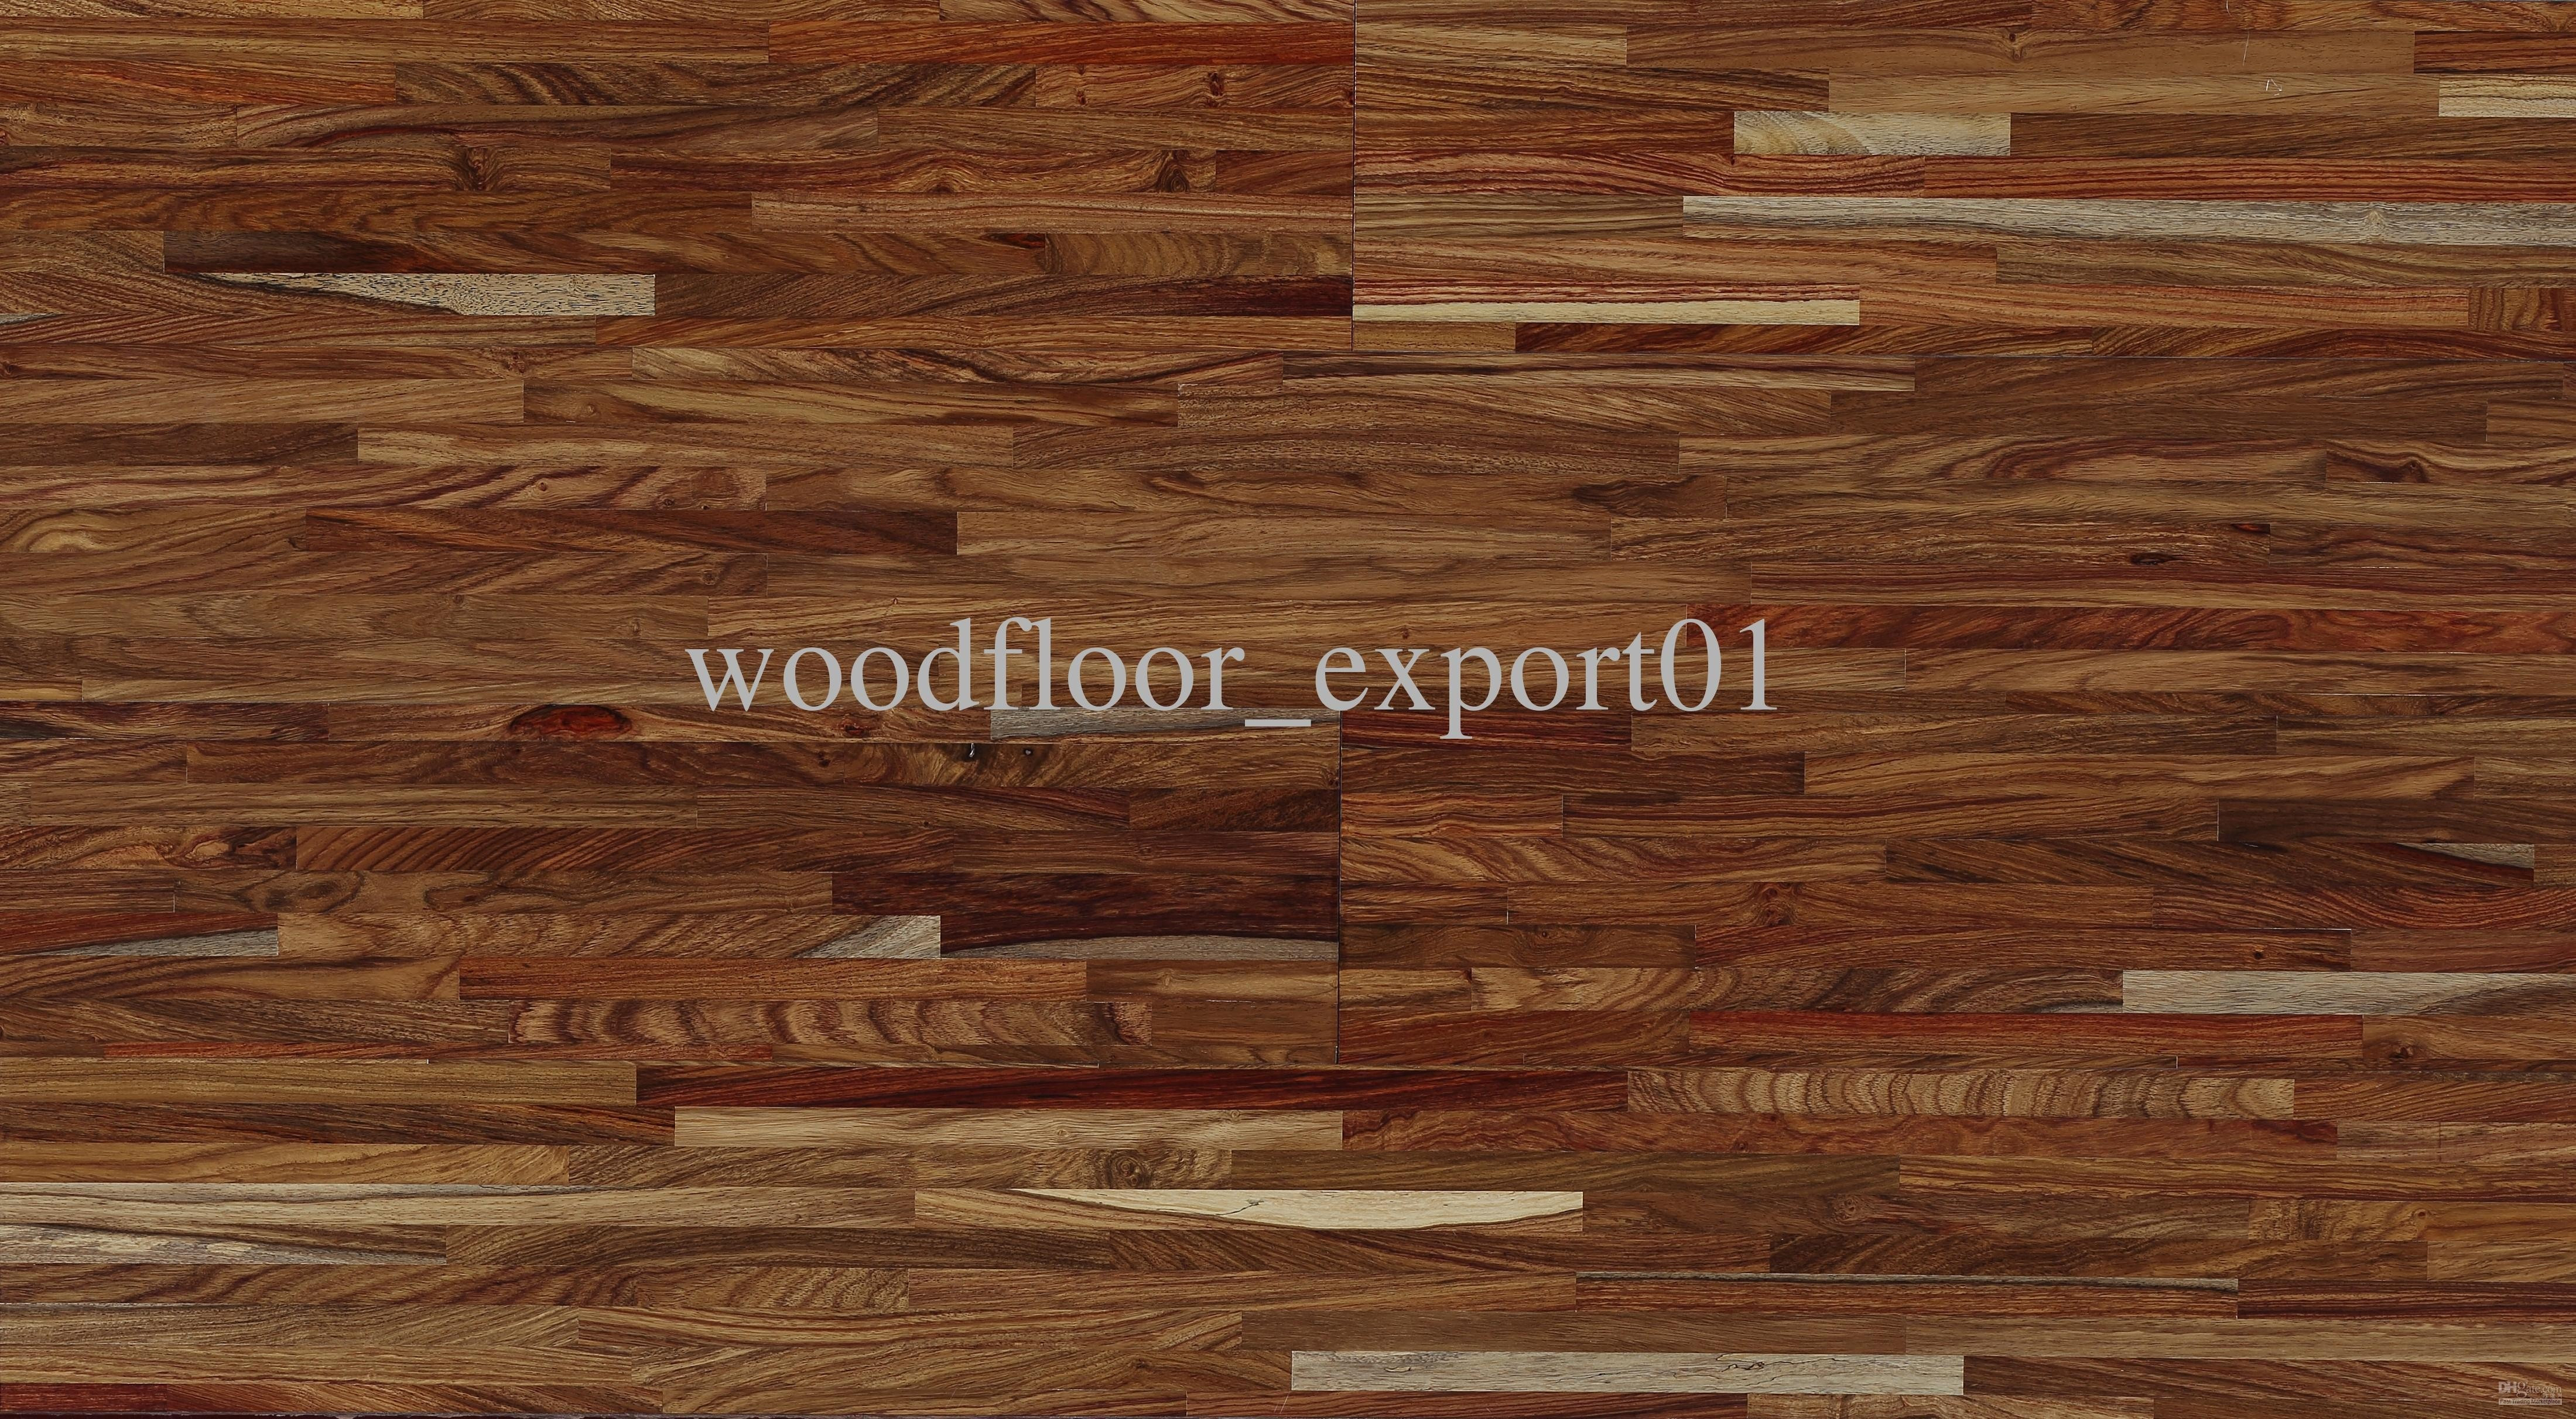 can you use different color hardwood floors of premier laminate flooring fresh piedmont oak is a versatile warm with premier laminate flooring lovely flooring nj furniture design hard wood flooring new 0d grace place photos premier laminate flooring new how to